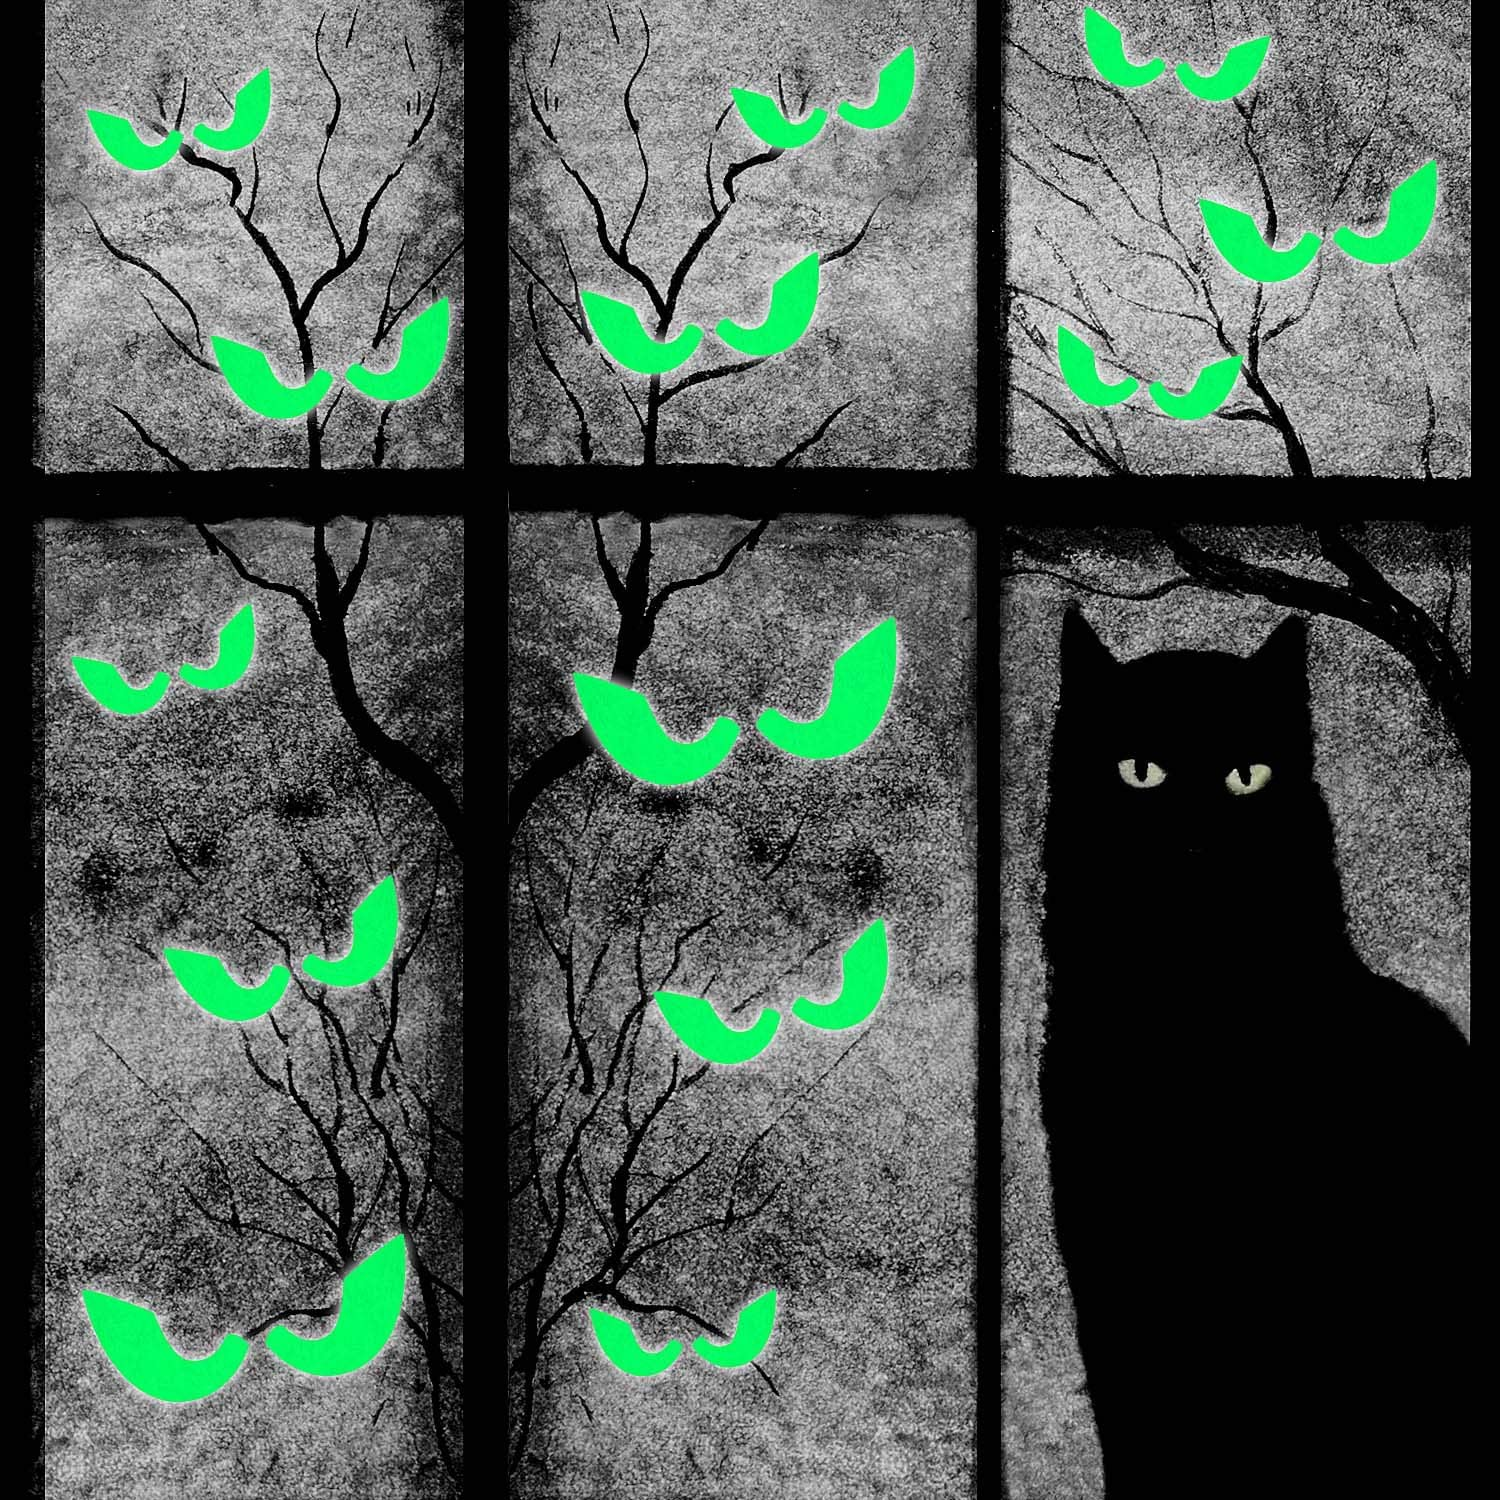 Boao 36 Pieces Halloween Luminous Wall Stickers Removable Fluorescent Sticker Peeping Eyes Stickers Glow in The Dark Window Wall Decals for Halloween Carnival Vampire Door Decorations